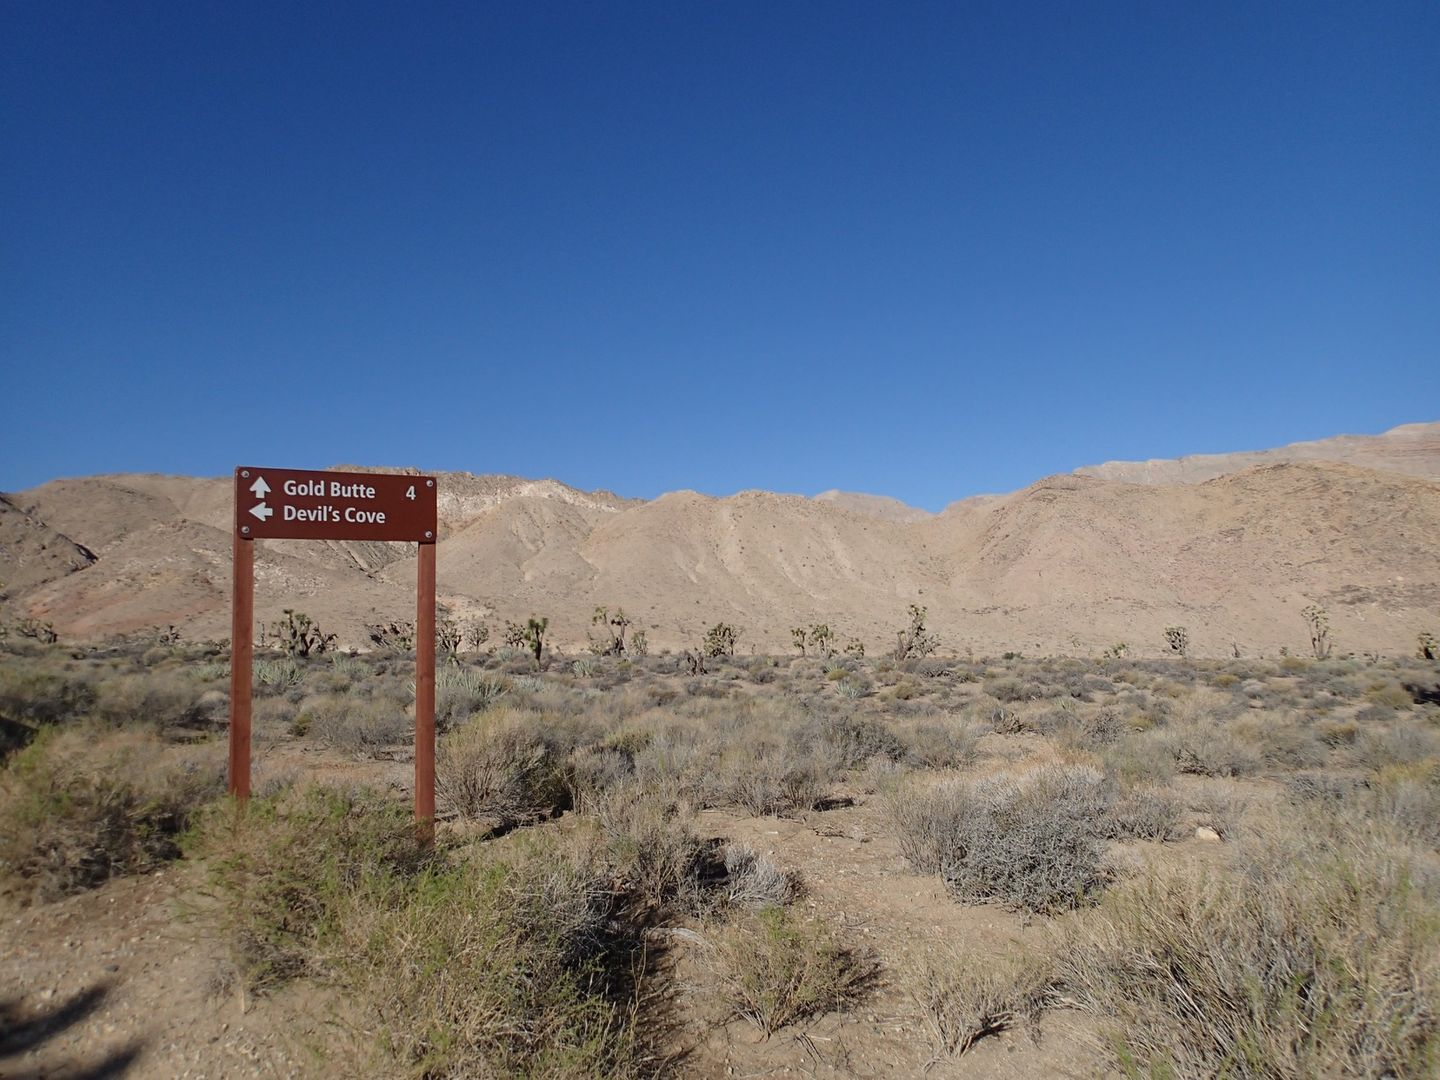 Gold Butte Backcountry Byway - Waypoint 13: Devils Cove Intersection